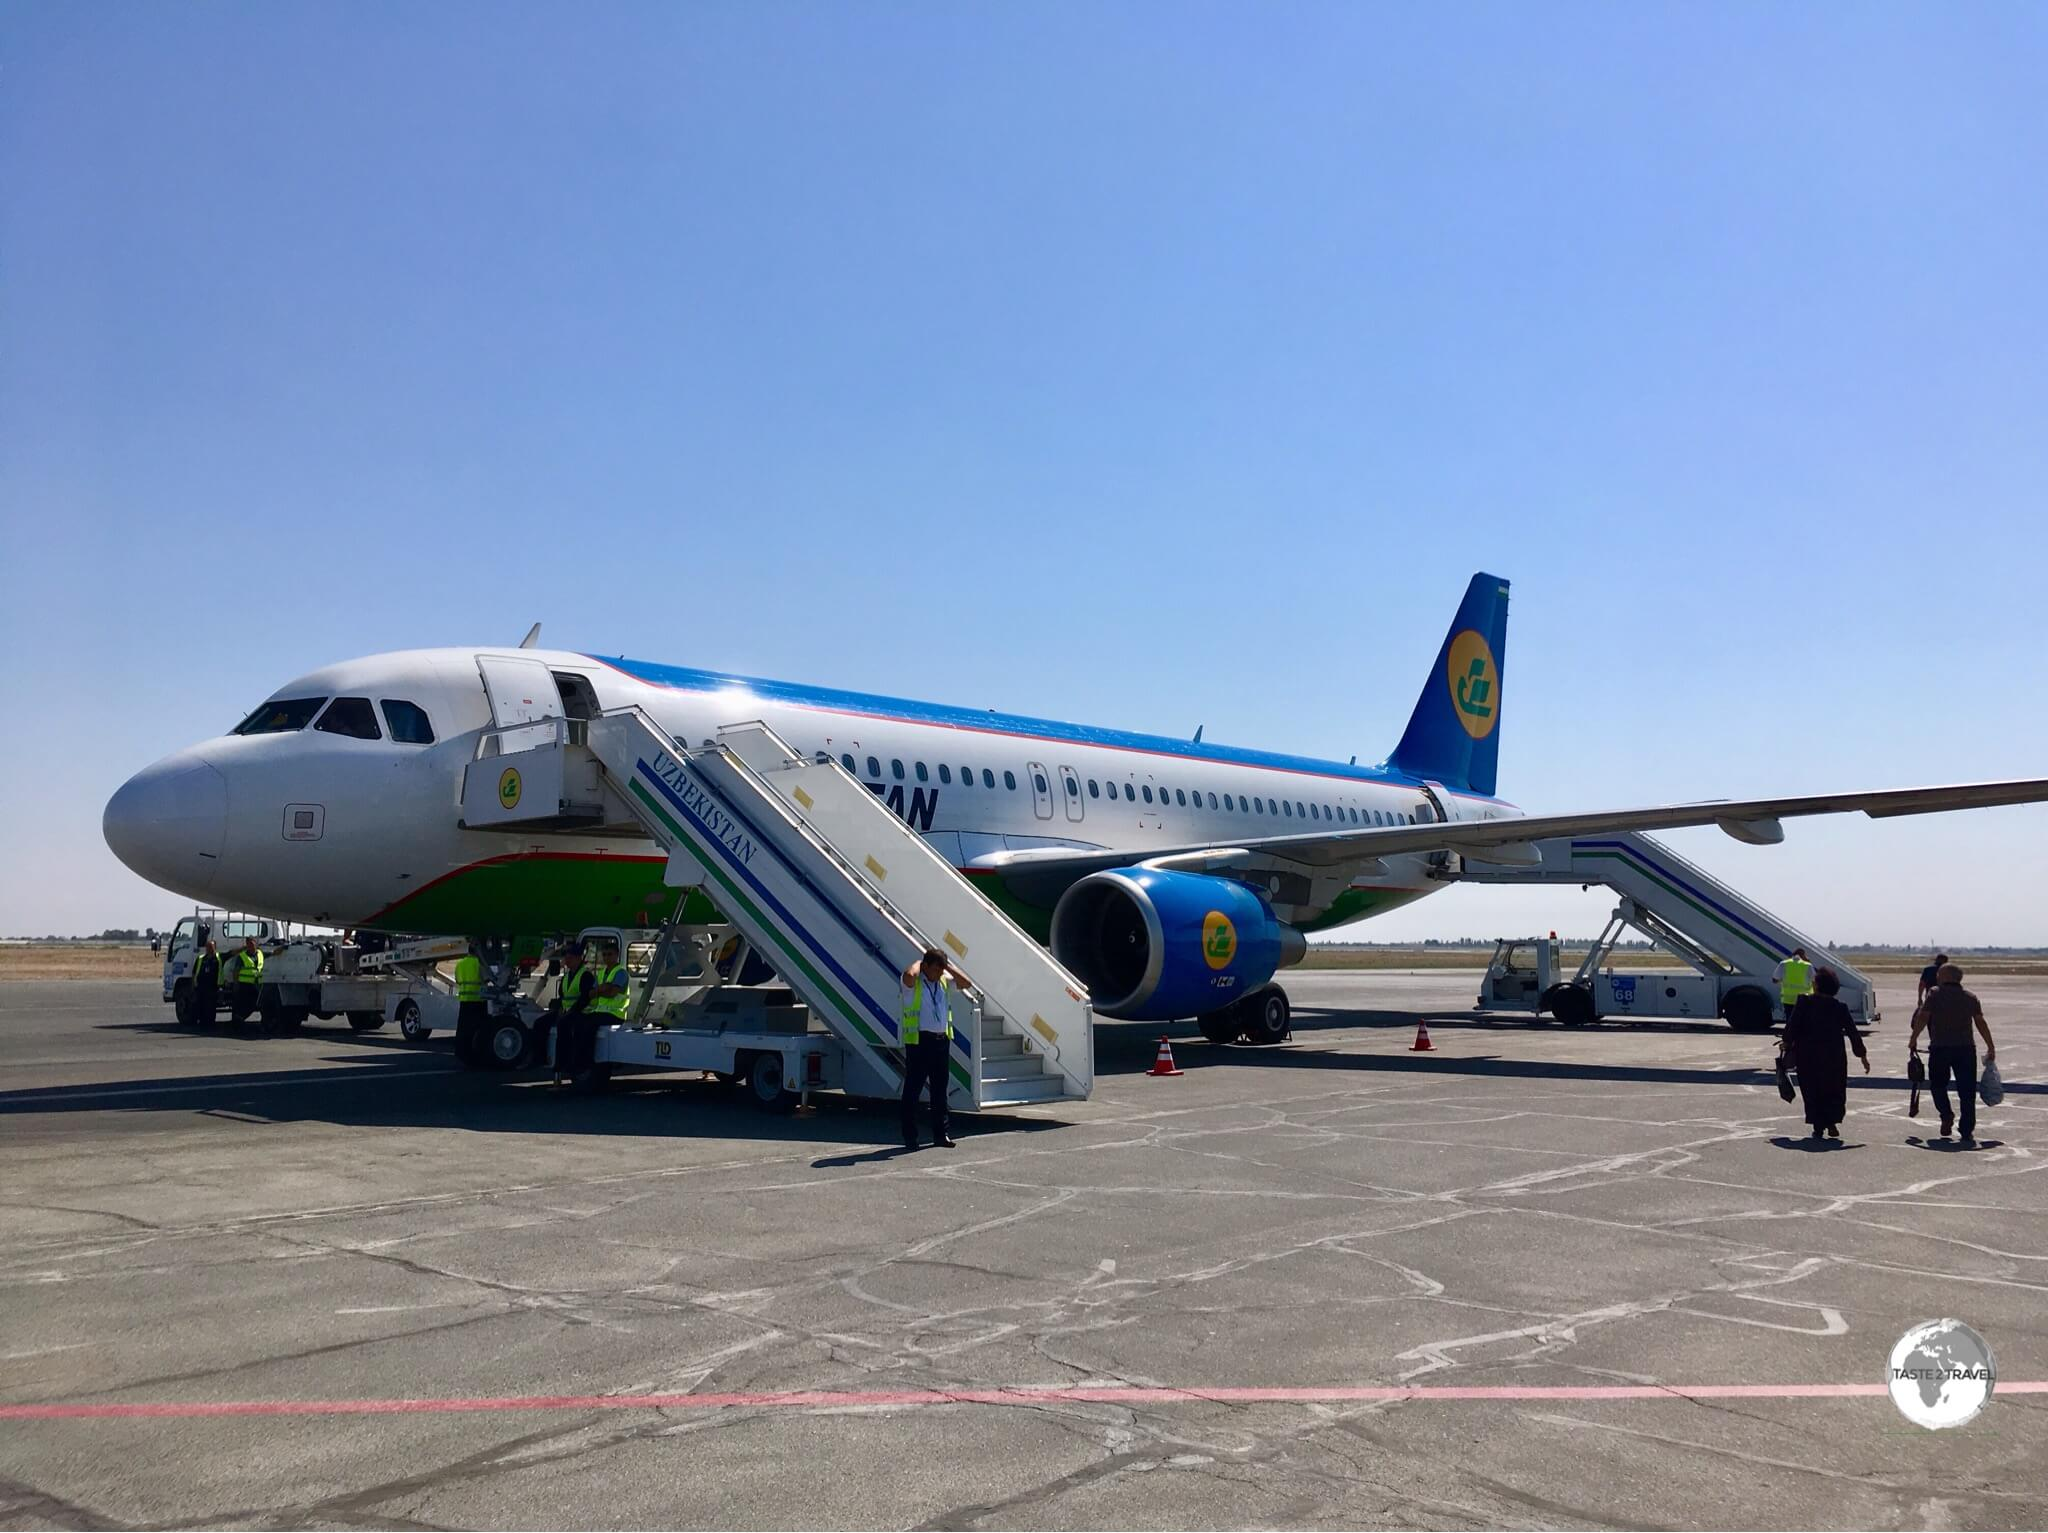 An Uzbekistan Airways flight ready to depart from Urgench airport.